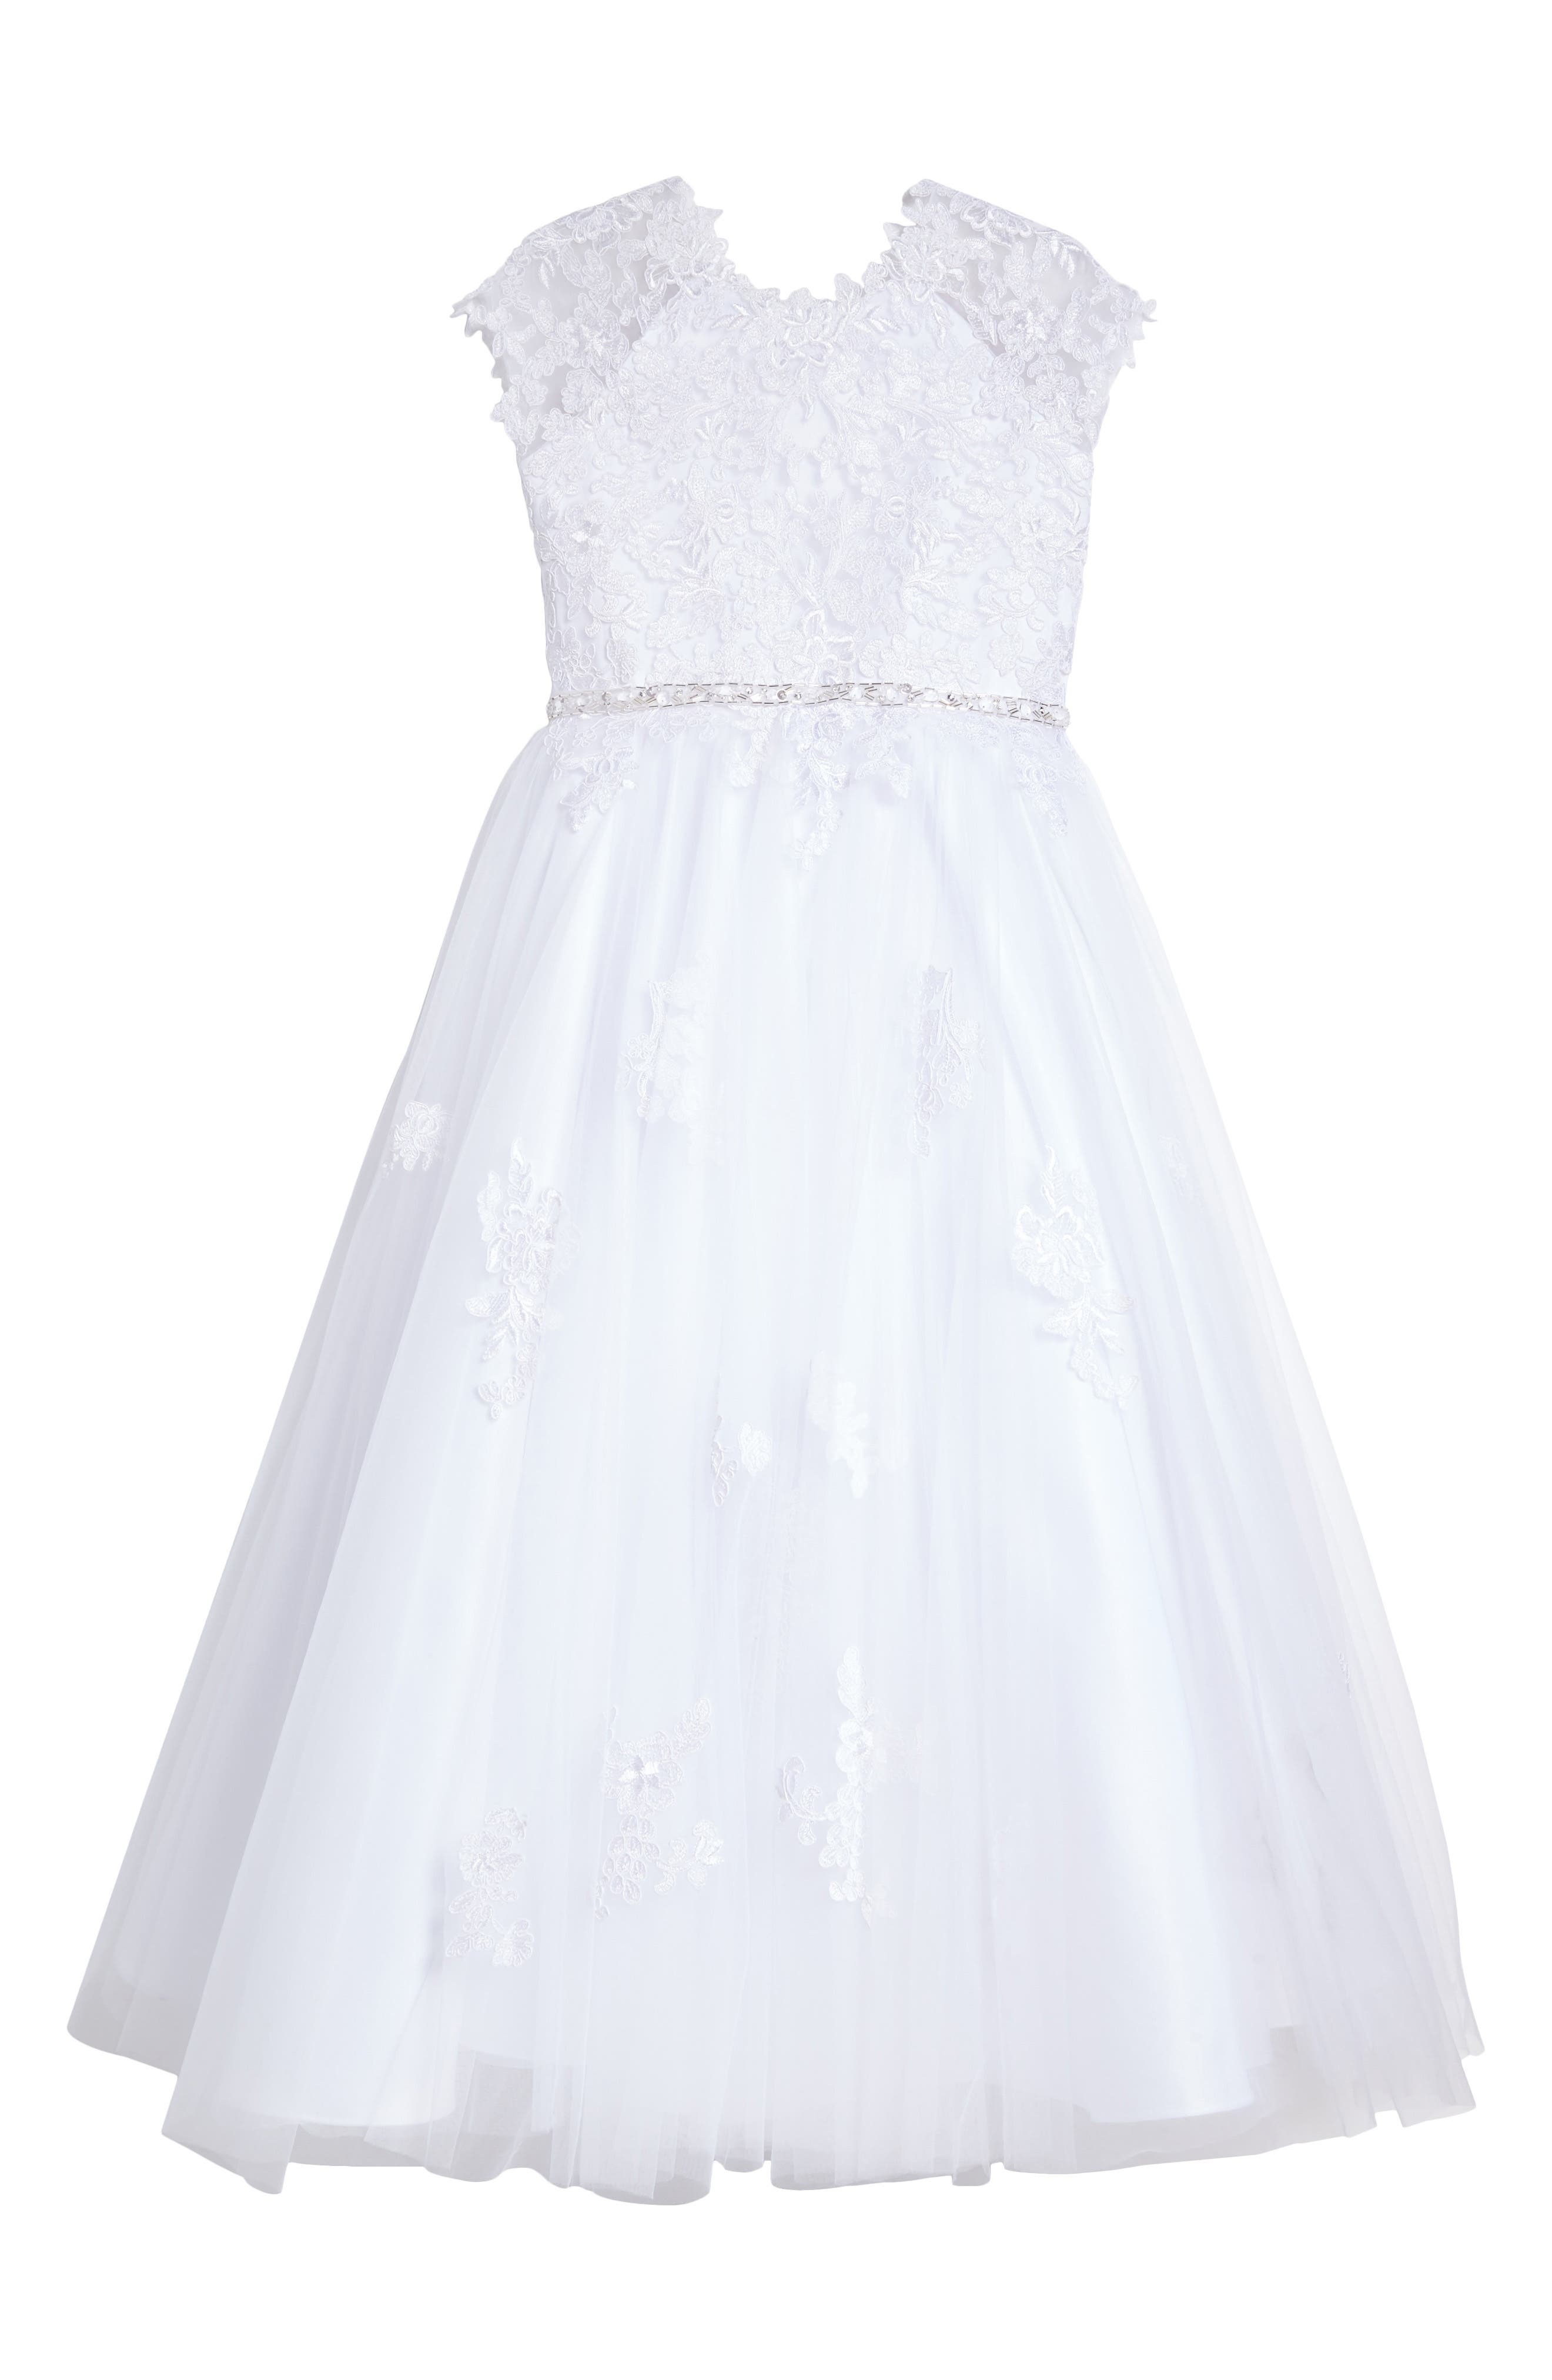 Lace Appliqué Tulle First Communion Dress,                             Main thumbnail 1, color,                             White